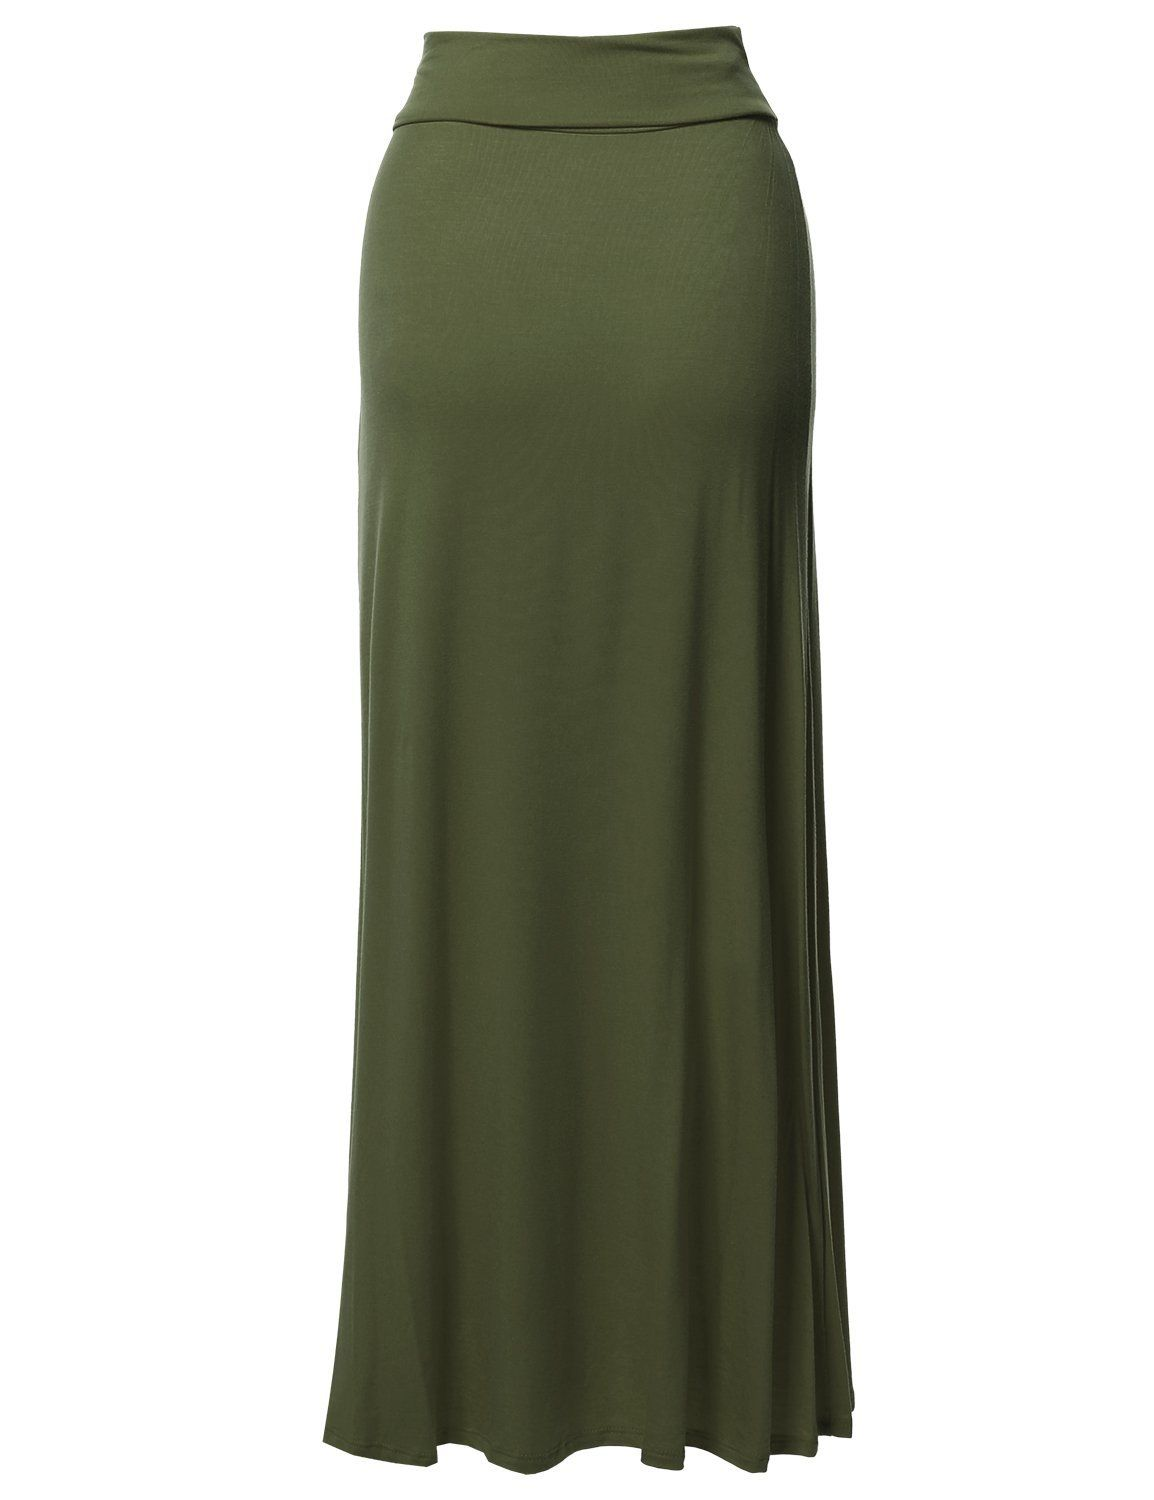 FashionOutfit Women/'s Stylish Fold Over Flare Long Maxi Skirt Made In USA